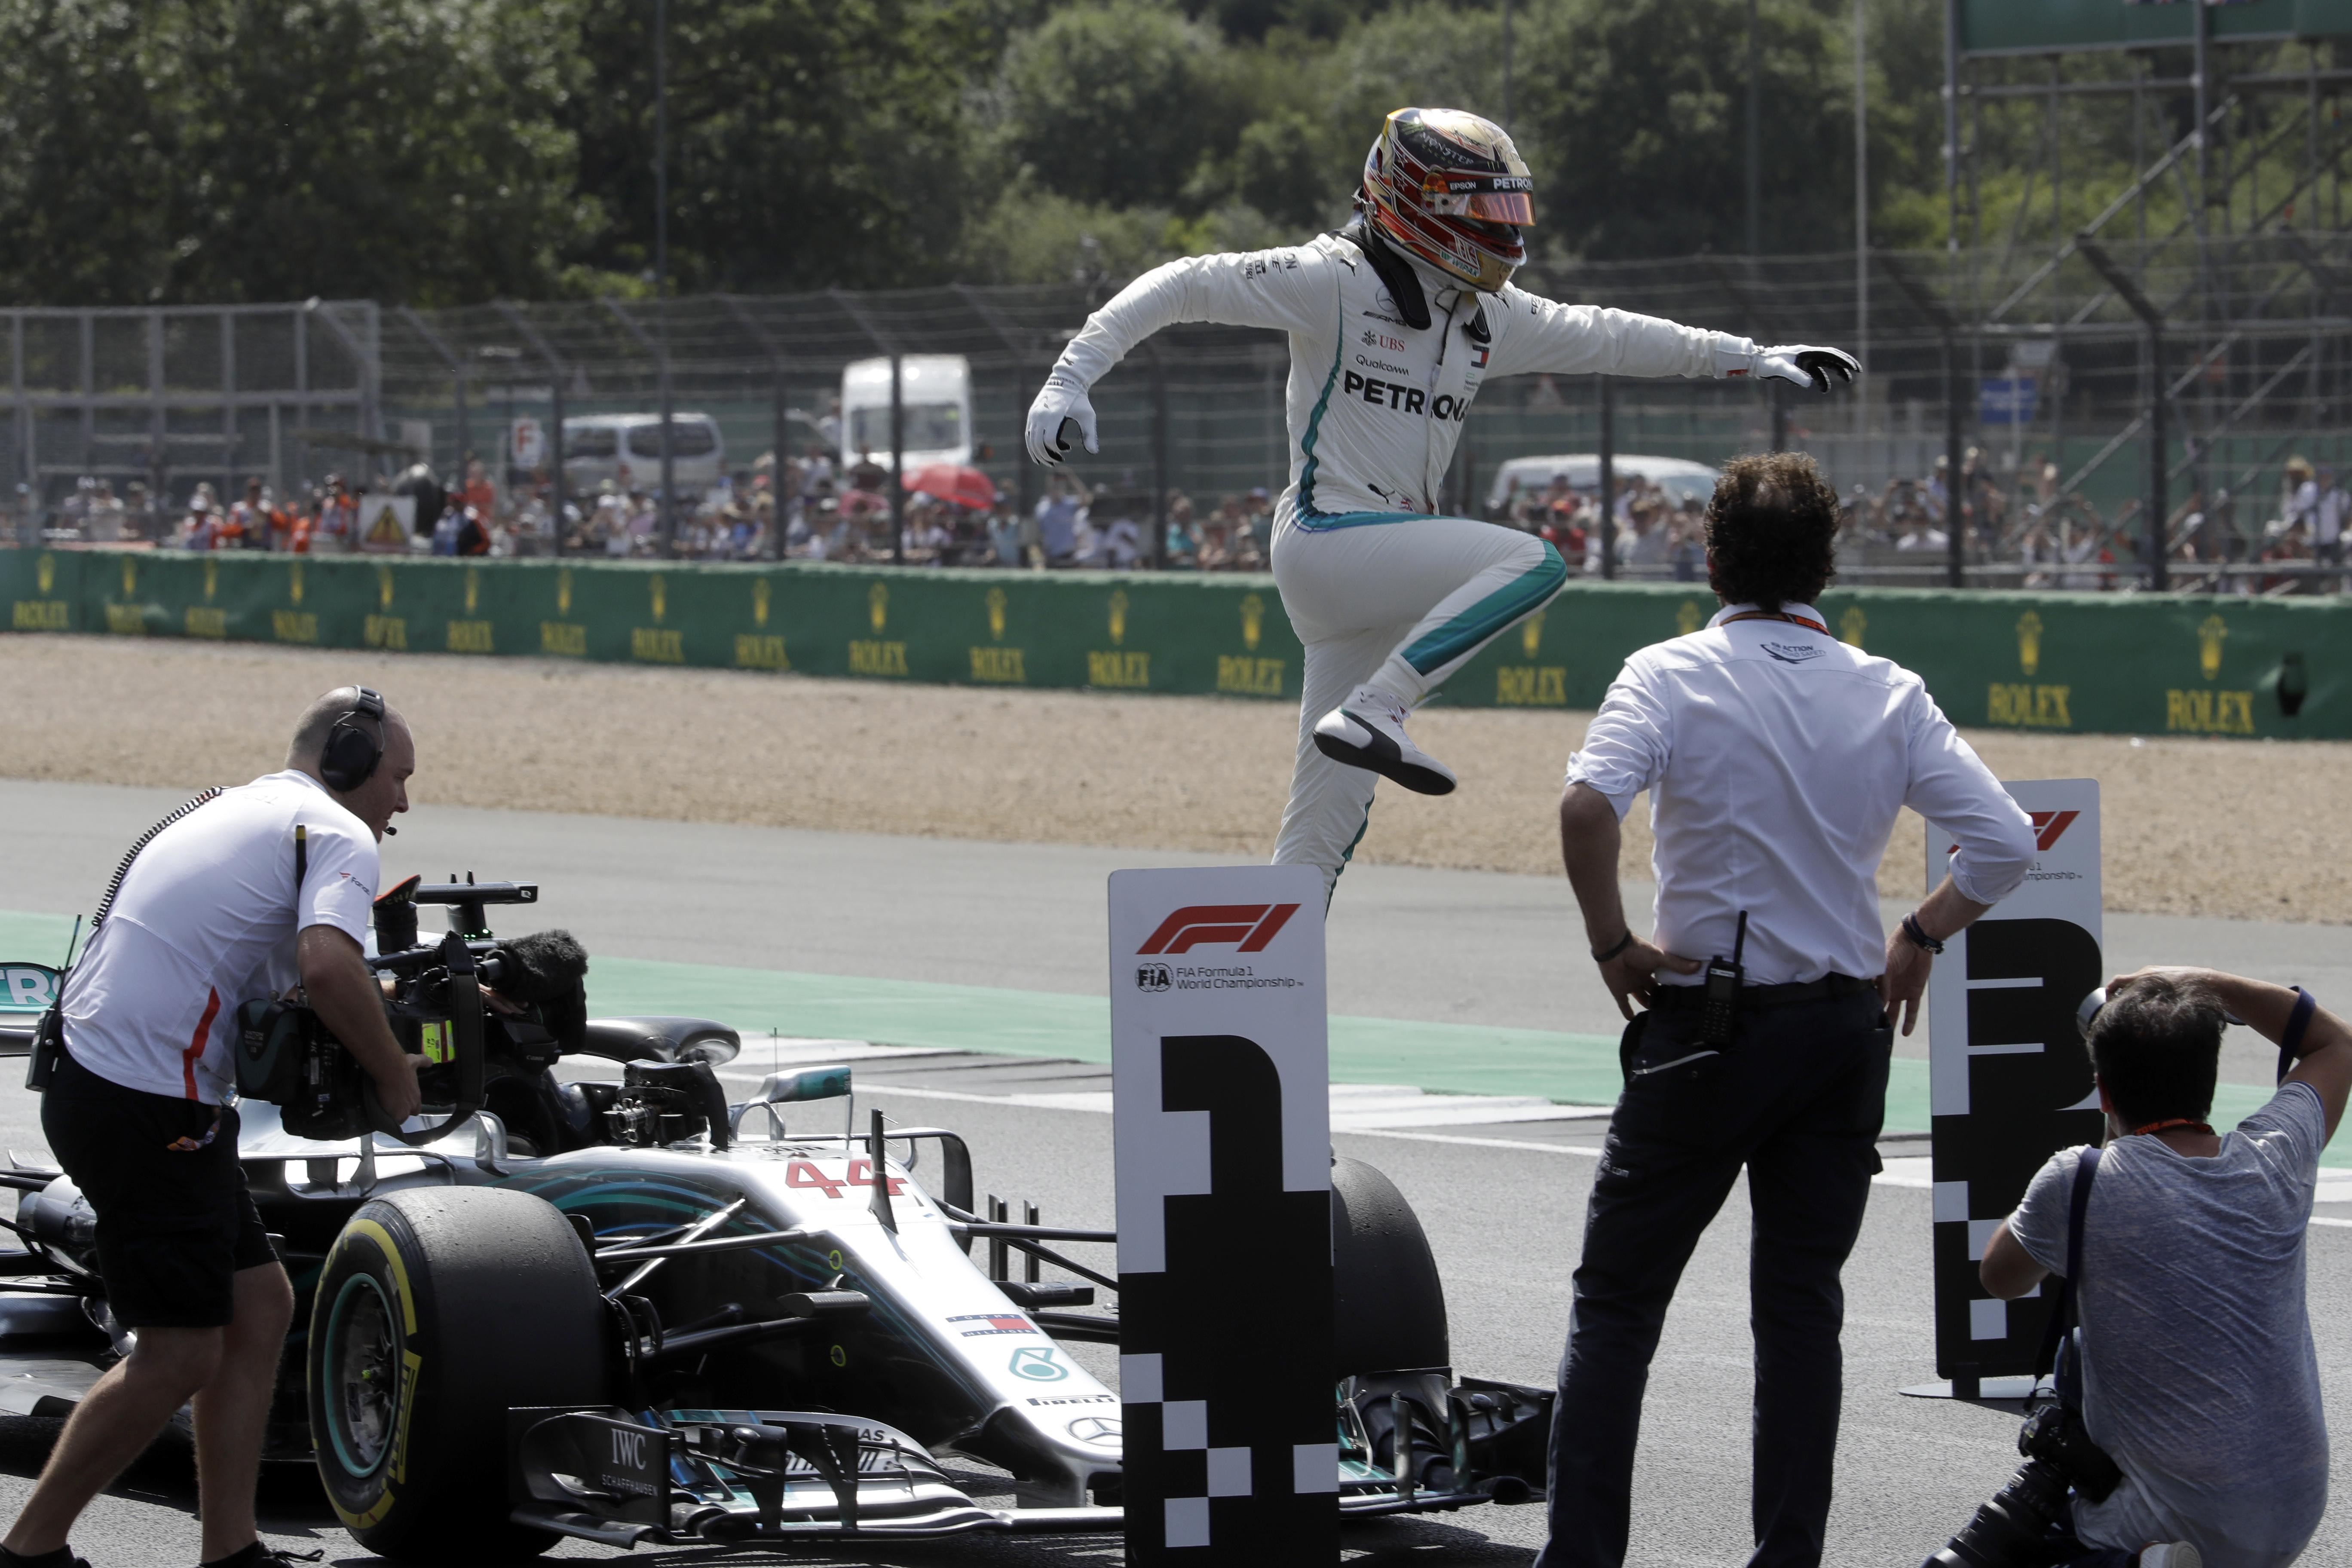 Mercedes driver Lewis Hamilton of Britain celebrates after getting the pole  position in the qualifying session 8d1104549d63